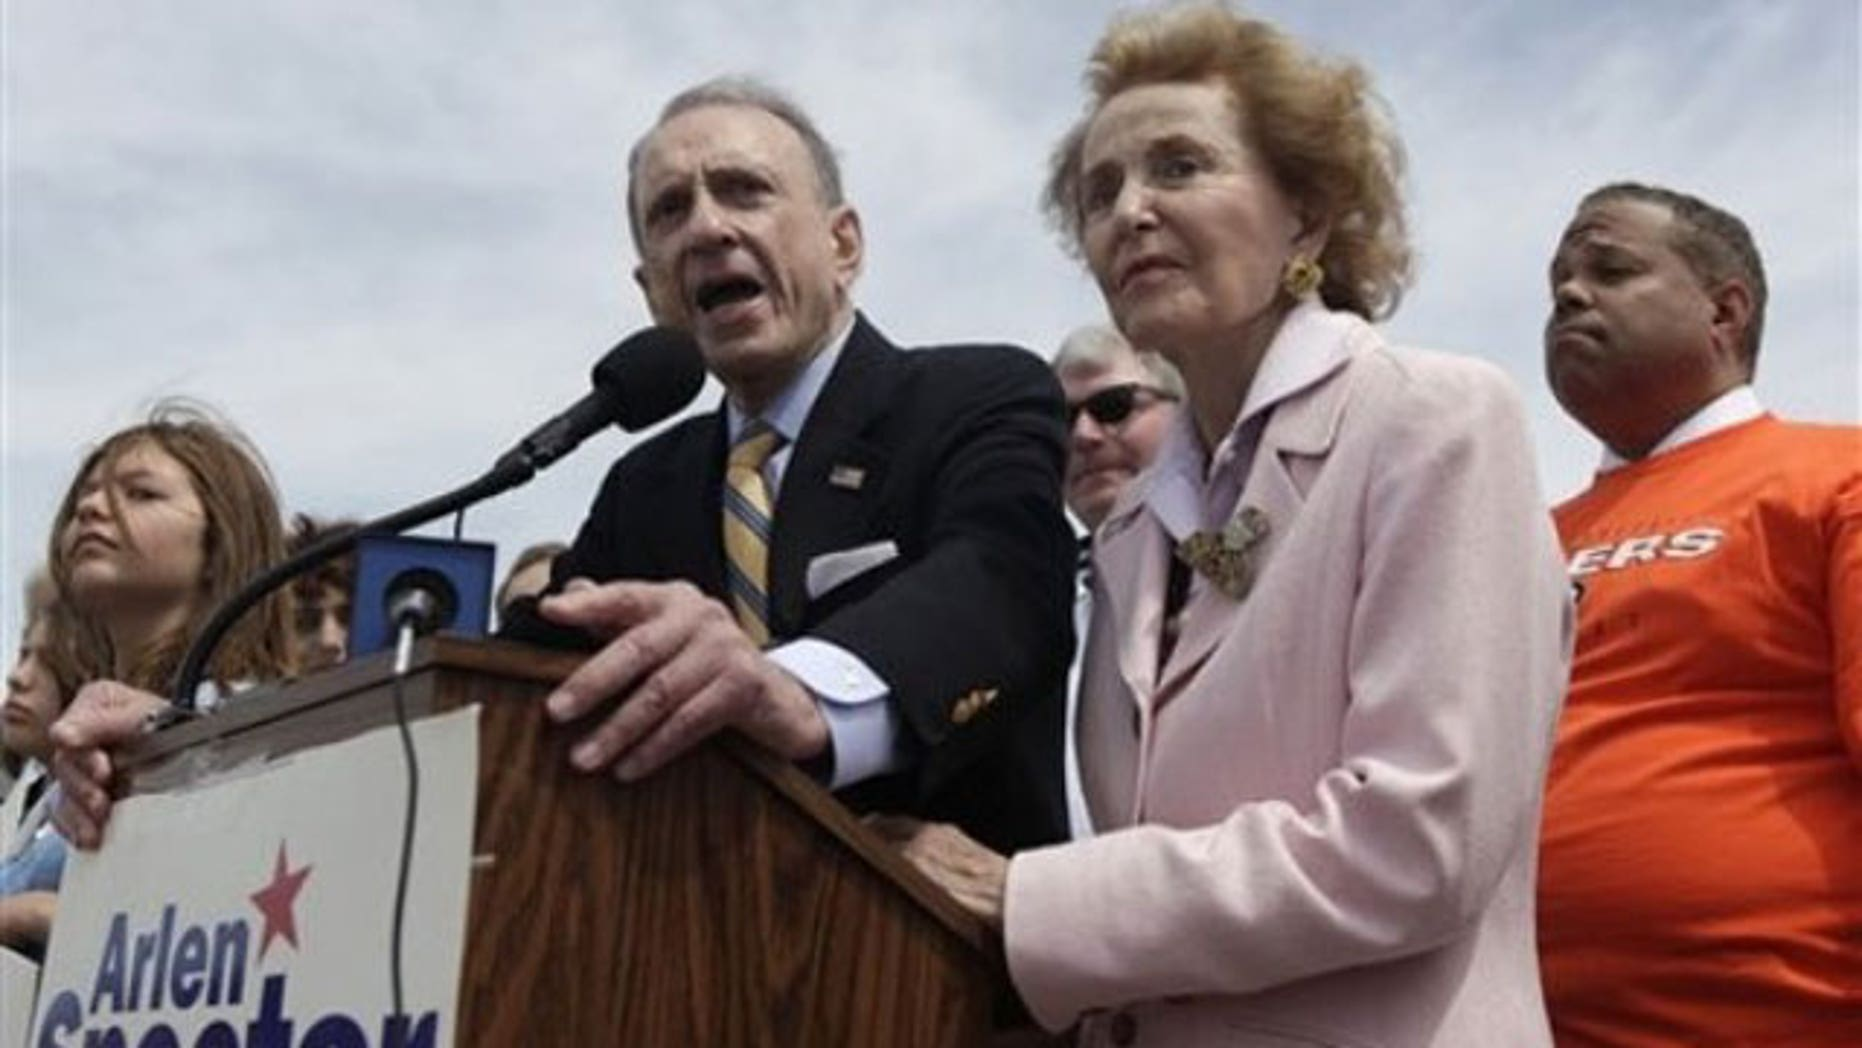 May 16: Sen. Arlen Specter, D-Pa. , with his wife Joan, at his side, campaigns at a rally titled Delivering for Pennsylvania: Upgrading the Port of Philadelphia at the Packer Avenue Marine Terminal in Philadelphia (AP).